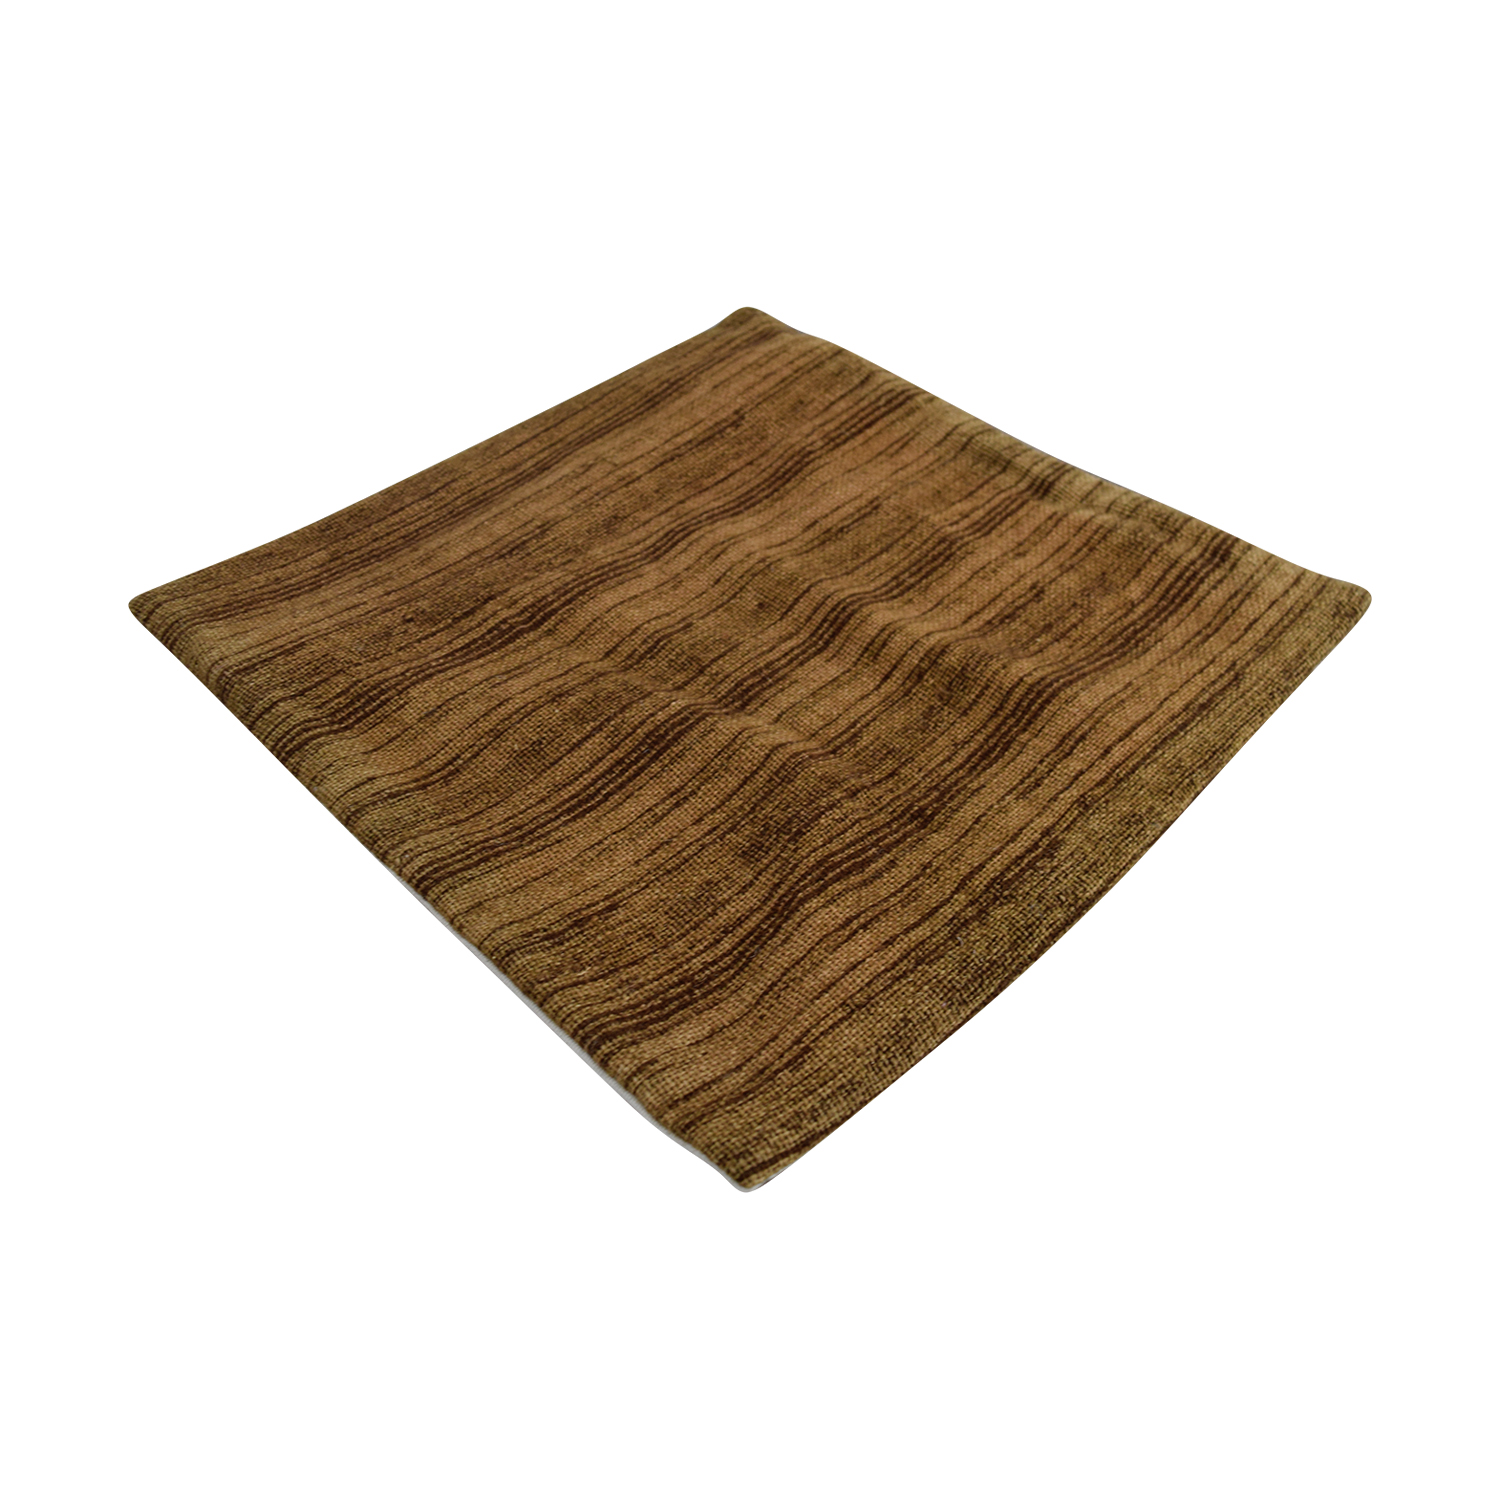 Obeetee Obeetee Brown Cushion Cover price